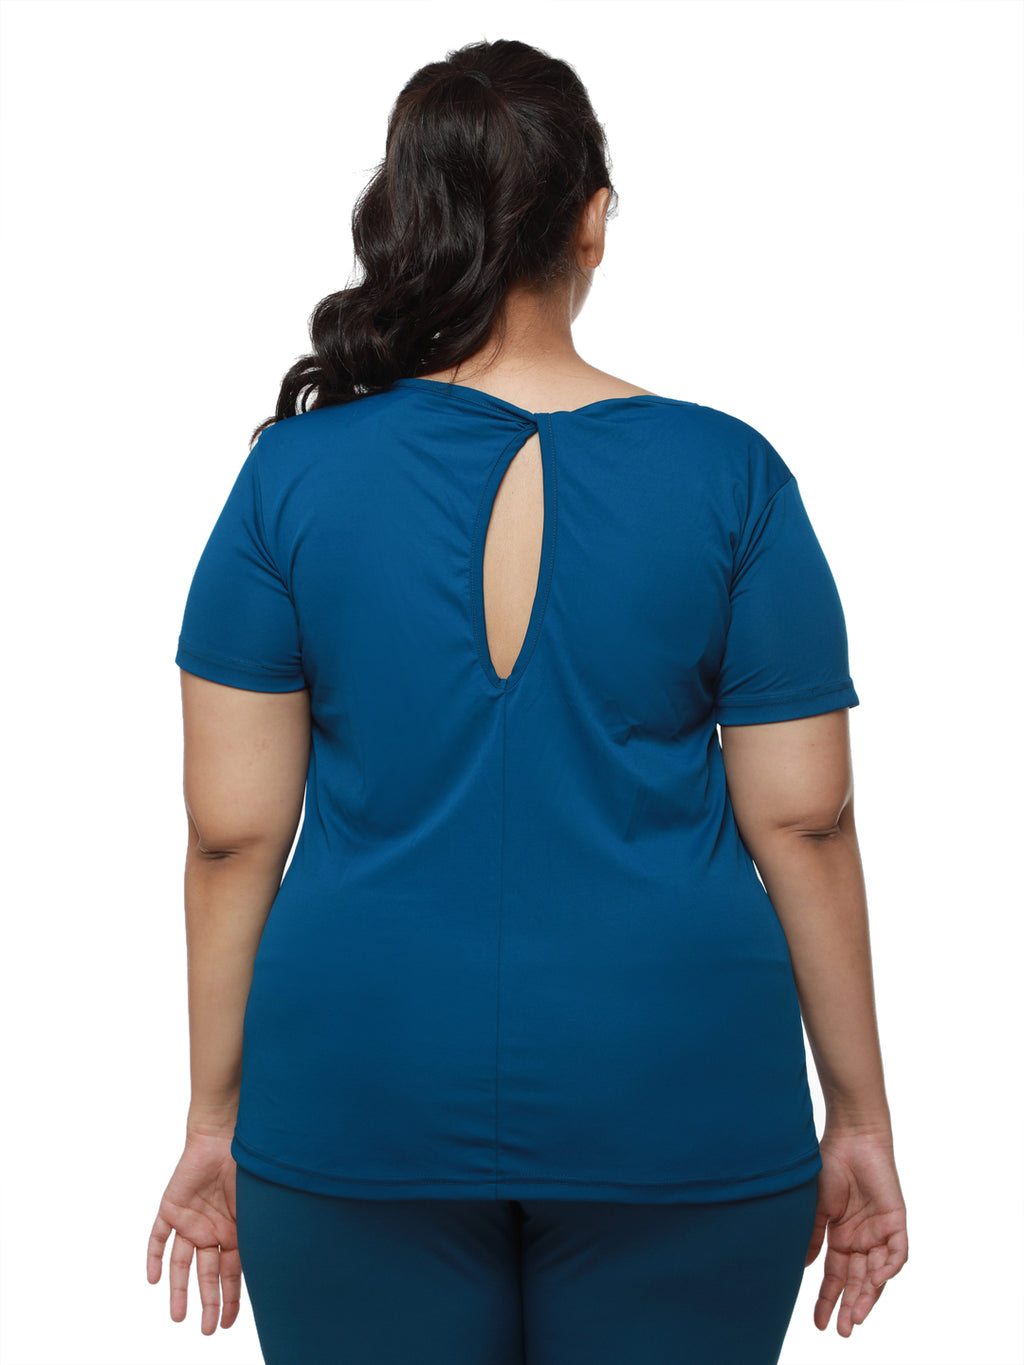 Teal Twisty Back Tee